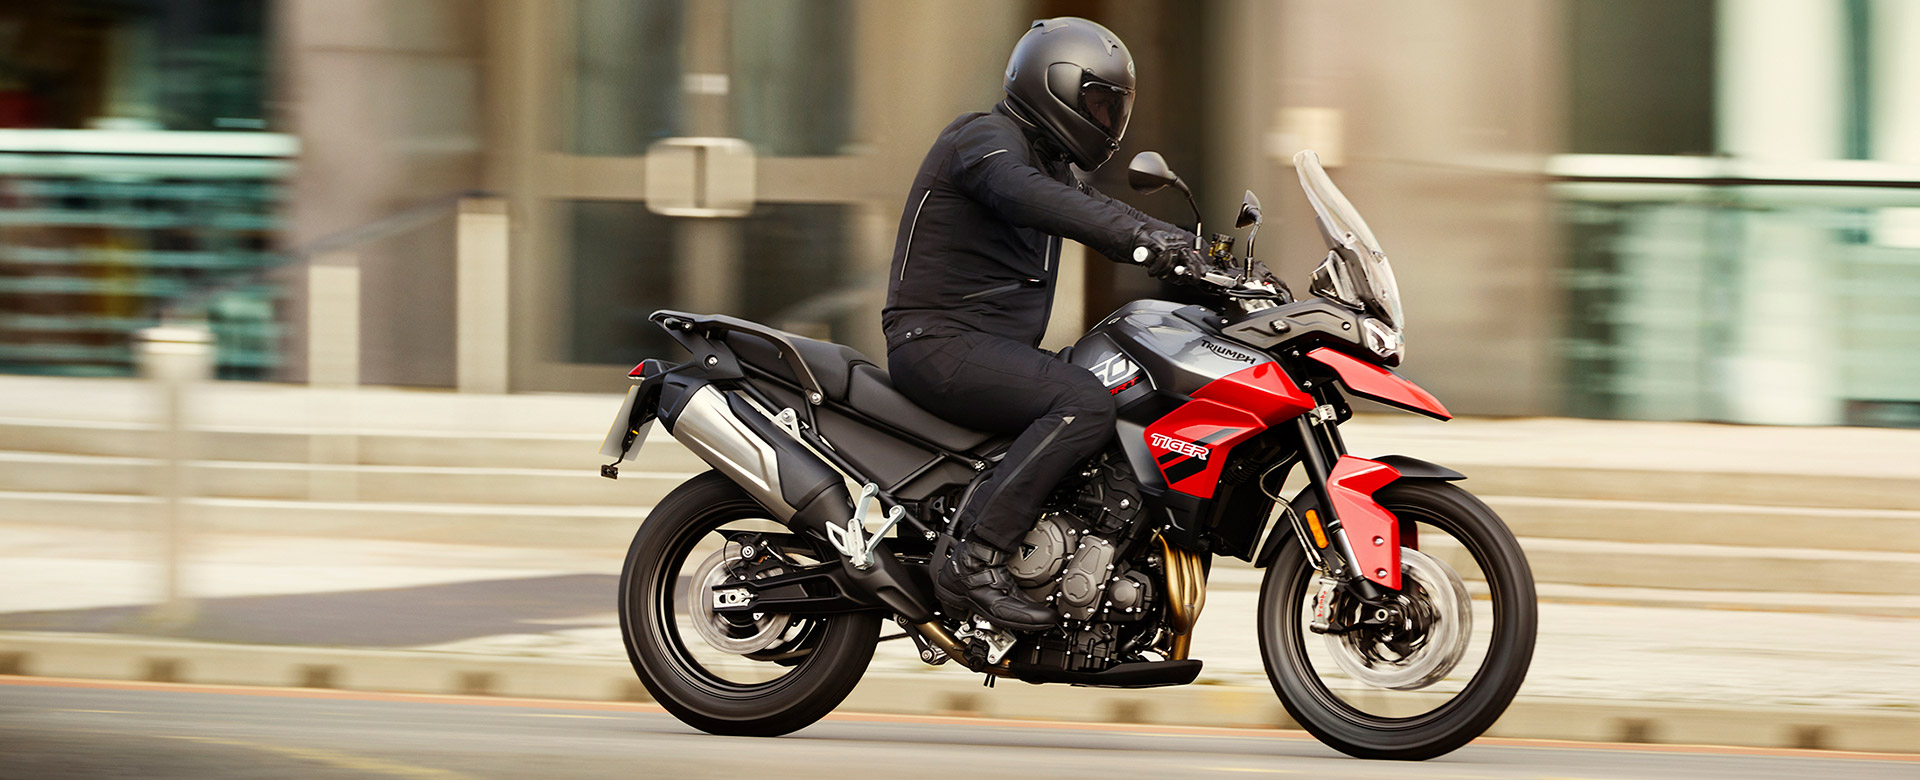 A view of a rider enjoying the 2021 Triumph Tiger 850